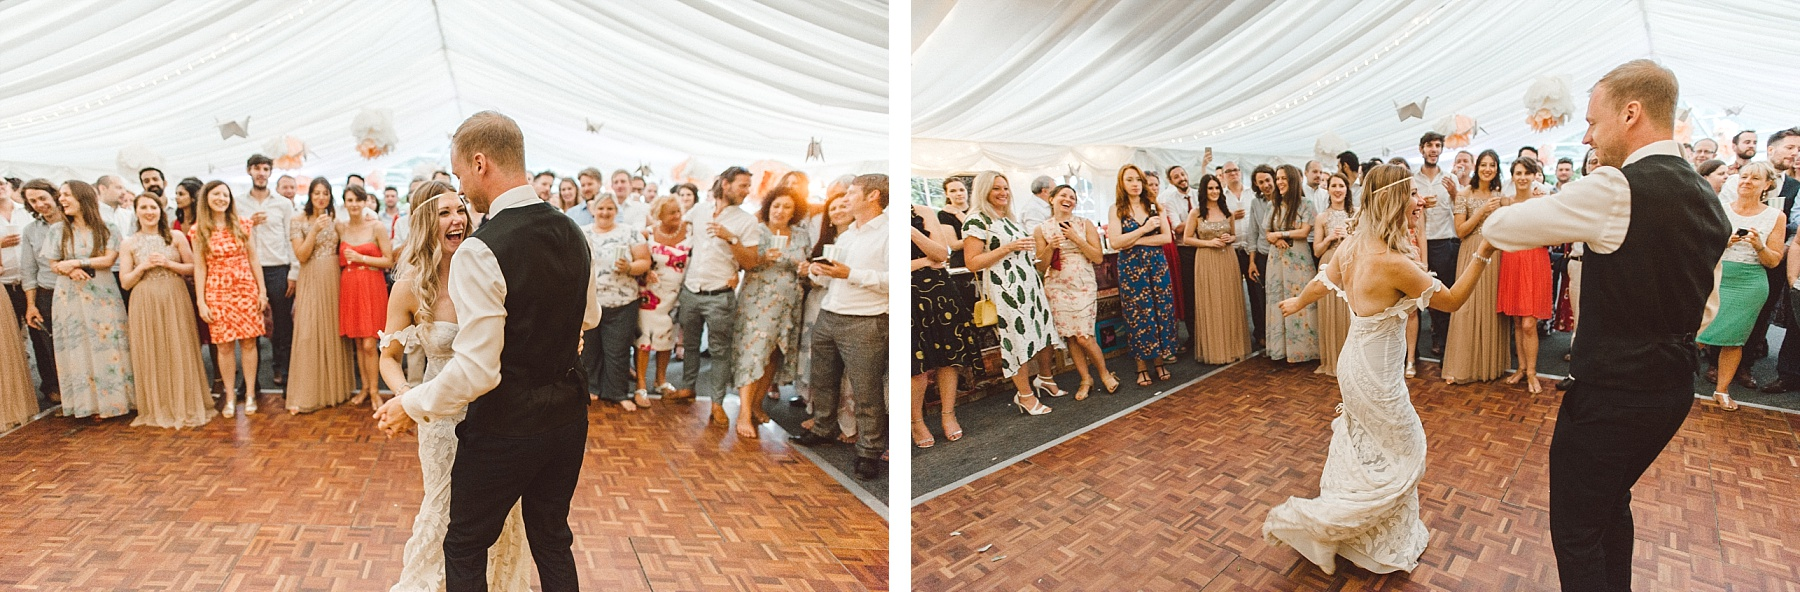 Hayling Island wedding